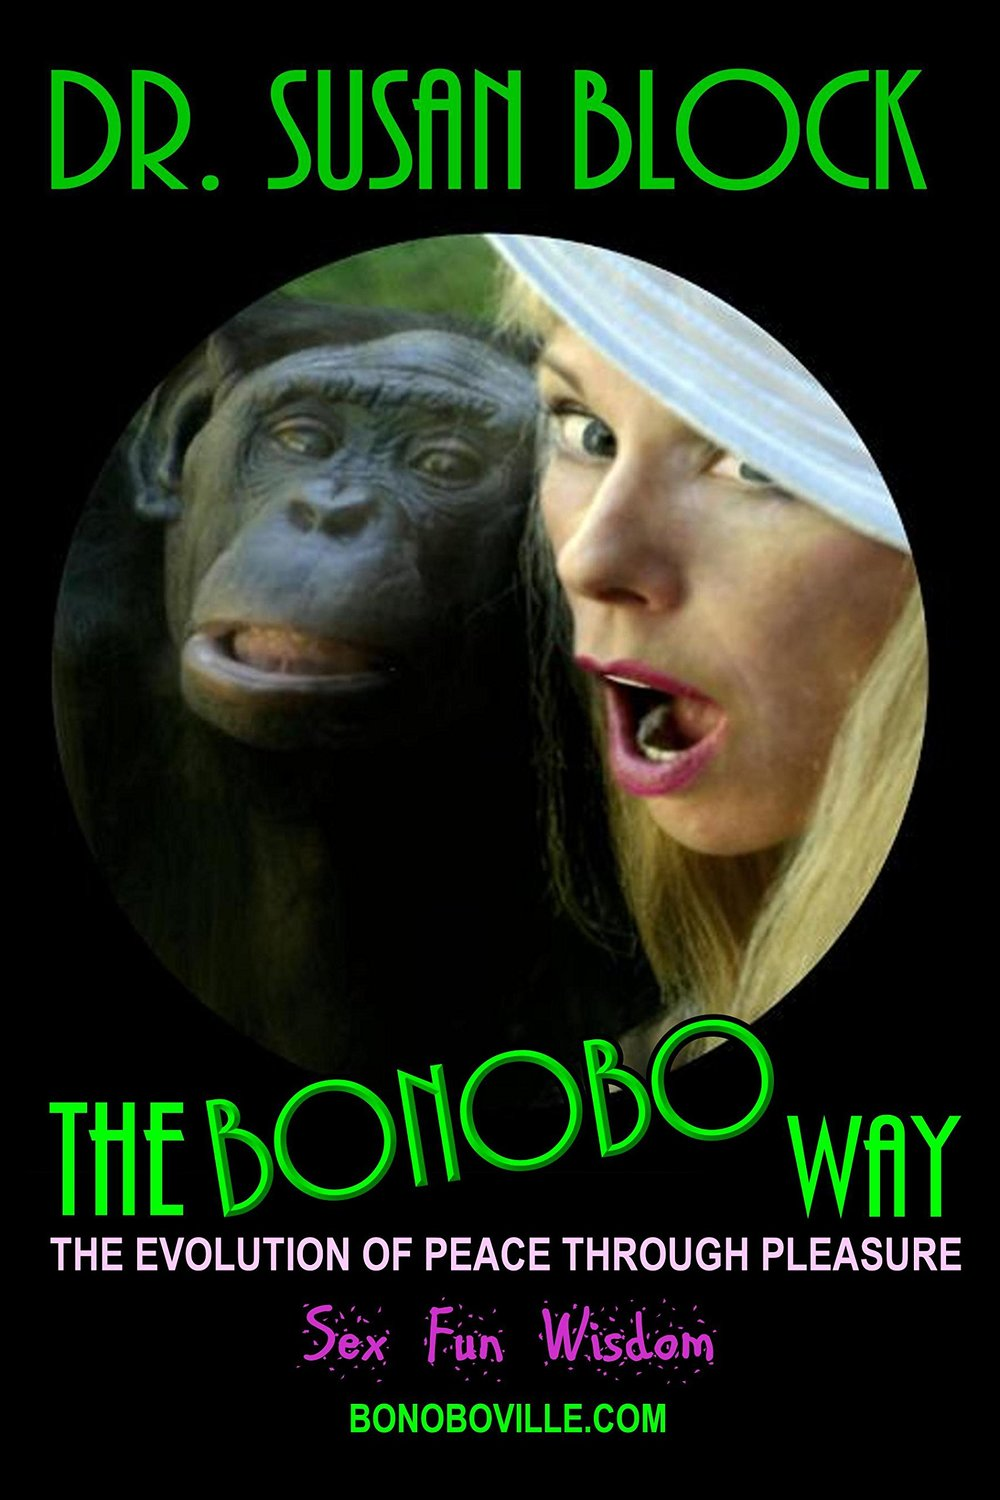 "Have you heard the buzz about bonobos? One of the fascinatingly freaky features that these free-loving primates exhibit, which seems to have skipped us humans during evolution (If you're into Darwinism), is the phrase that author Dr. Susan Block has coined, ""peace through pleasure"" Bonobo chimps de-escalate arguments – and violence – with sex. Unlike gorillas, chimps, or human, bonobos have a unique take on conflict resolution: Peace through pleasure. In  The Bonobo Way,  Dr. Block details common traits shared by all of bonobo kind. For example, they are naturally generous and open fisted with both food and sex.     ""Peace through pleasure is more than make-up sex. It's a way of life and a way of thinking about oneself and the world.""    But it's not just our oversexed evolutionary ancestors from whom we can learn a thing or two.  The Bonobo Way  is riddled with real world examples from Dr. Block's own clients (anonymously) as a sex therapist of over 25 years.   Dr. Block delivers the deets on an array of other subjects in a way that only she can. Recreational drugs and sex, SSRIS and sex, communication and sex, and the many parallels between the two sexes are but a few the subjects Dr. Block works through in her book.    Through Dr. Block's experience as the director of the Susan Block Institute for the Art & Science of Sex, we are given an insight into the world of eroticism. We see compassion, love, generosity, and a stark reality of a way in which we can live better lives by mimicking monkeys.   The way that these bonobos live challenge all of the preconceived ideas about how civilizations work, or in the words of Dr. Block, ""It's a return to a time before humans invented agriculture...""    Dr. Block preaches the benefit of sexual liberty without becoming a libertine (read: ethical hedonism) and urges us to ""go bonobos"". But wha  t does it mean to #GoBonobos?  The Bonobo Way  includes a 12 Step plan to help you #GoBonobos and unleash your inner primate in bed, or anywhere, for that matter (anywhere legally and responsibly, of course).     All of this and much,  much  more is detailed by world renown sexologist Dr. Susan Block in her book,  The Bonobo Way.      You can pick up a copy of  The Bonobo Way  by Dr. Susan Block    here.    Visit the Dr. Susan Block Institute    here    and be sure to watch the Dr. Susan Block show where Dr. Block and her colorful cast of porn stars and bonobos explore lust, love, fetishes, sexuality and more every Saturday night from Bonoboville at RadioSuzy1    here   ."